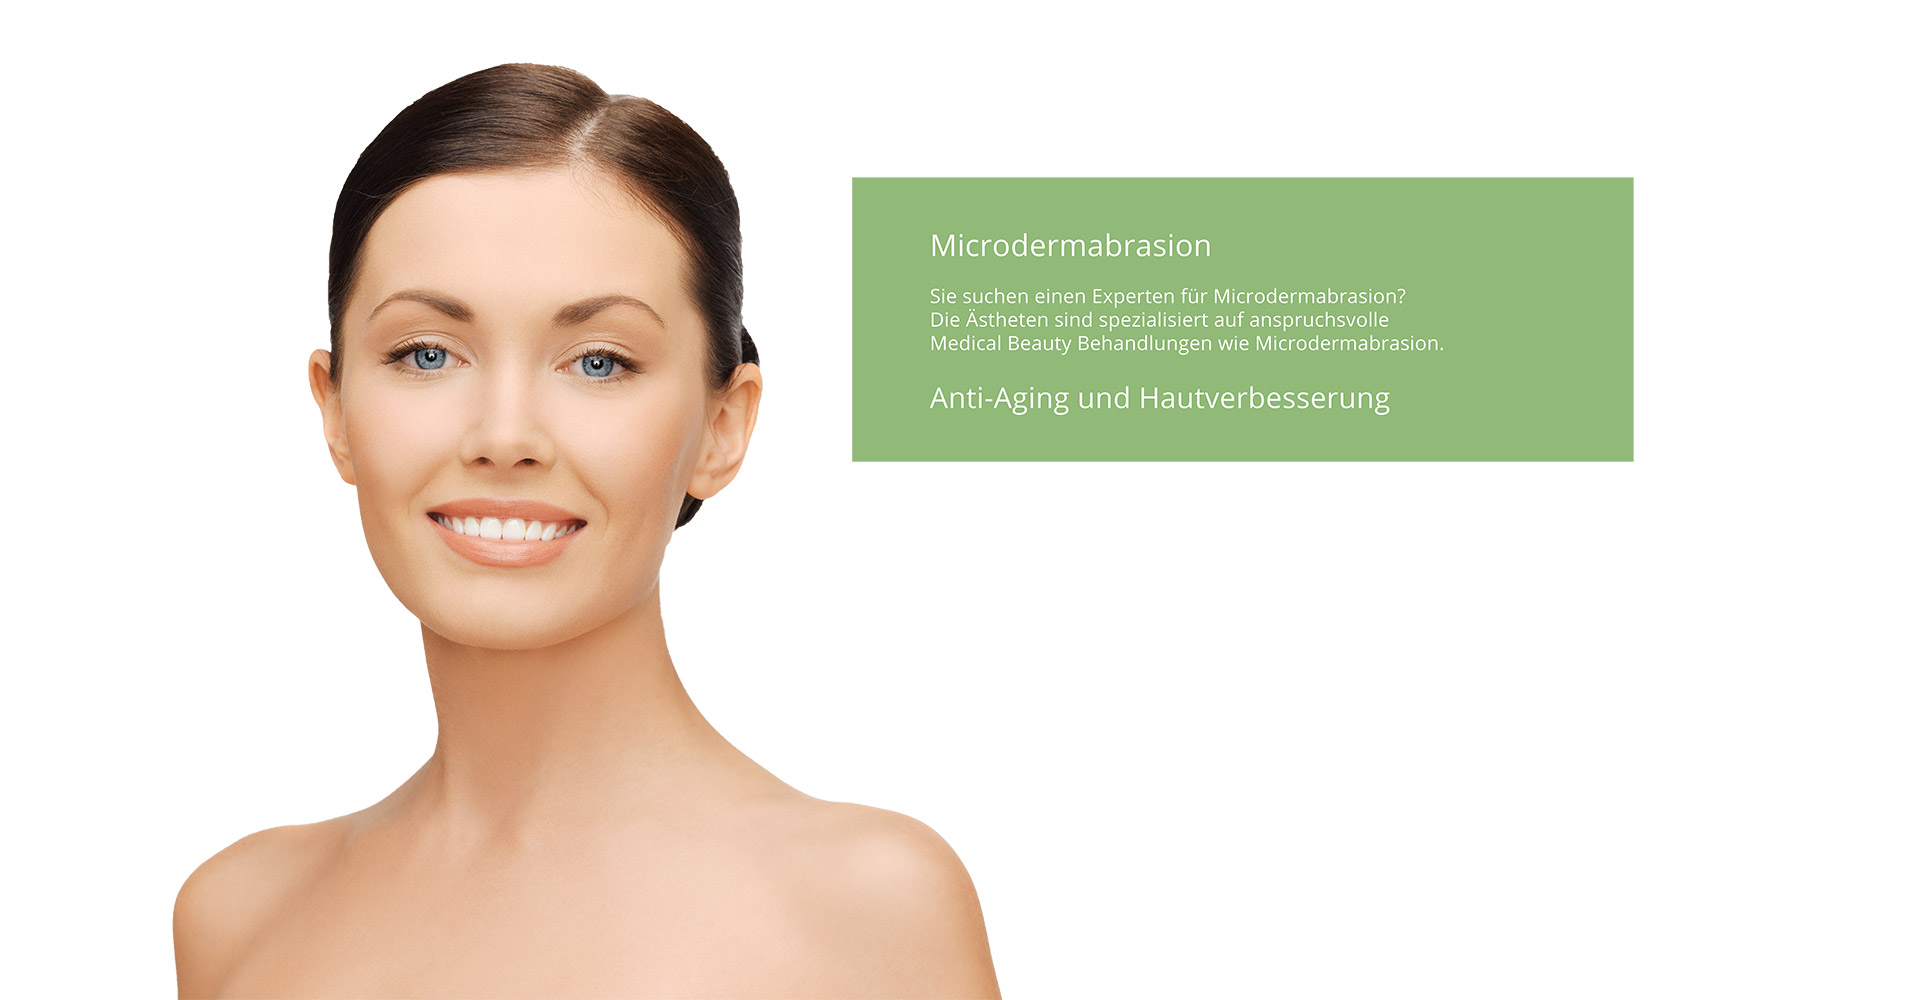 Microdermabrasion in München